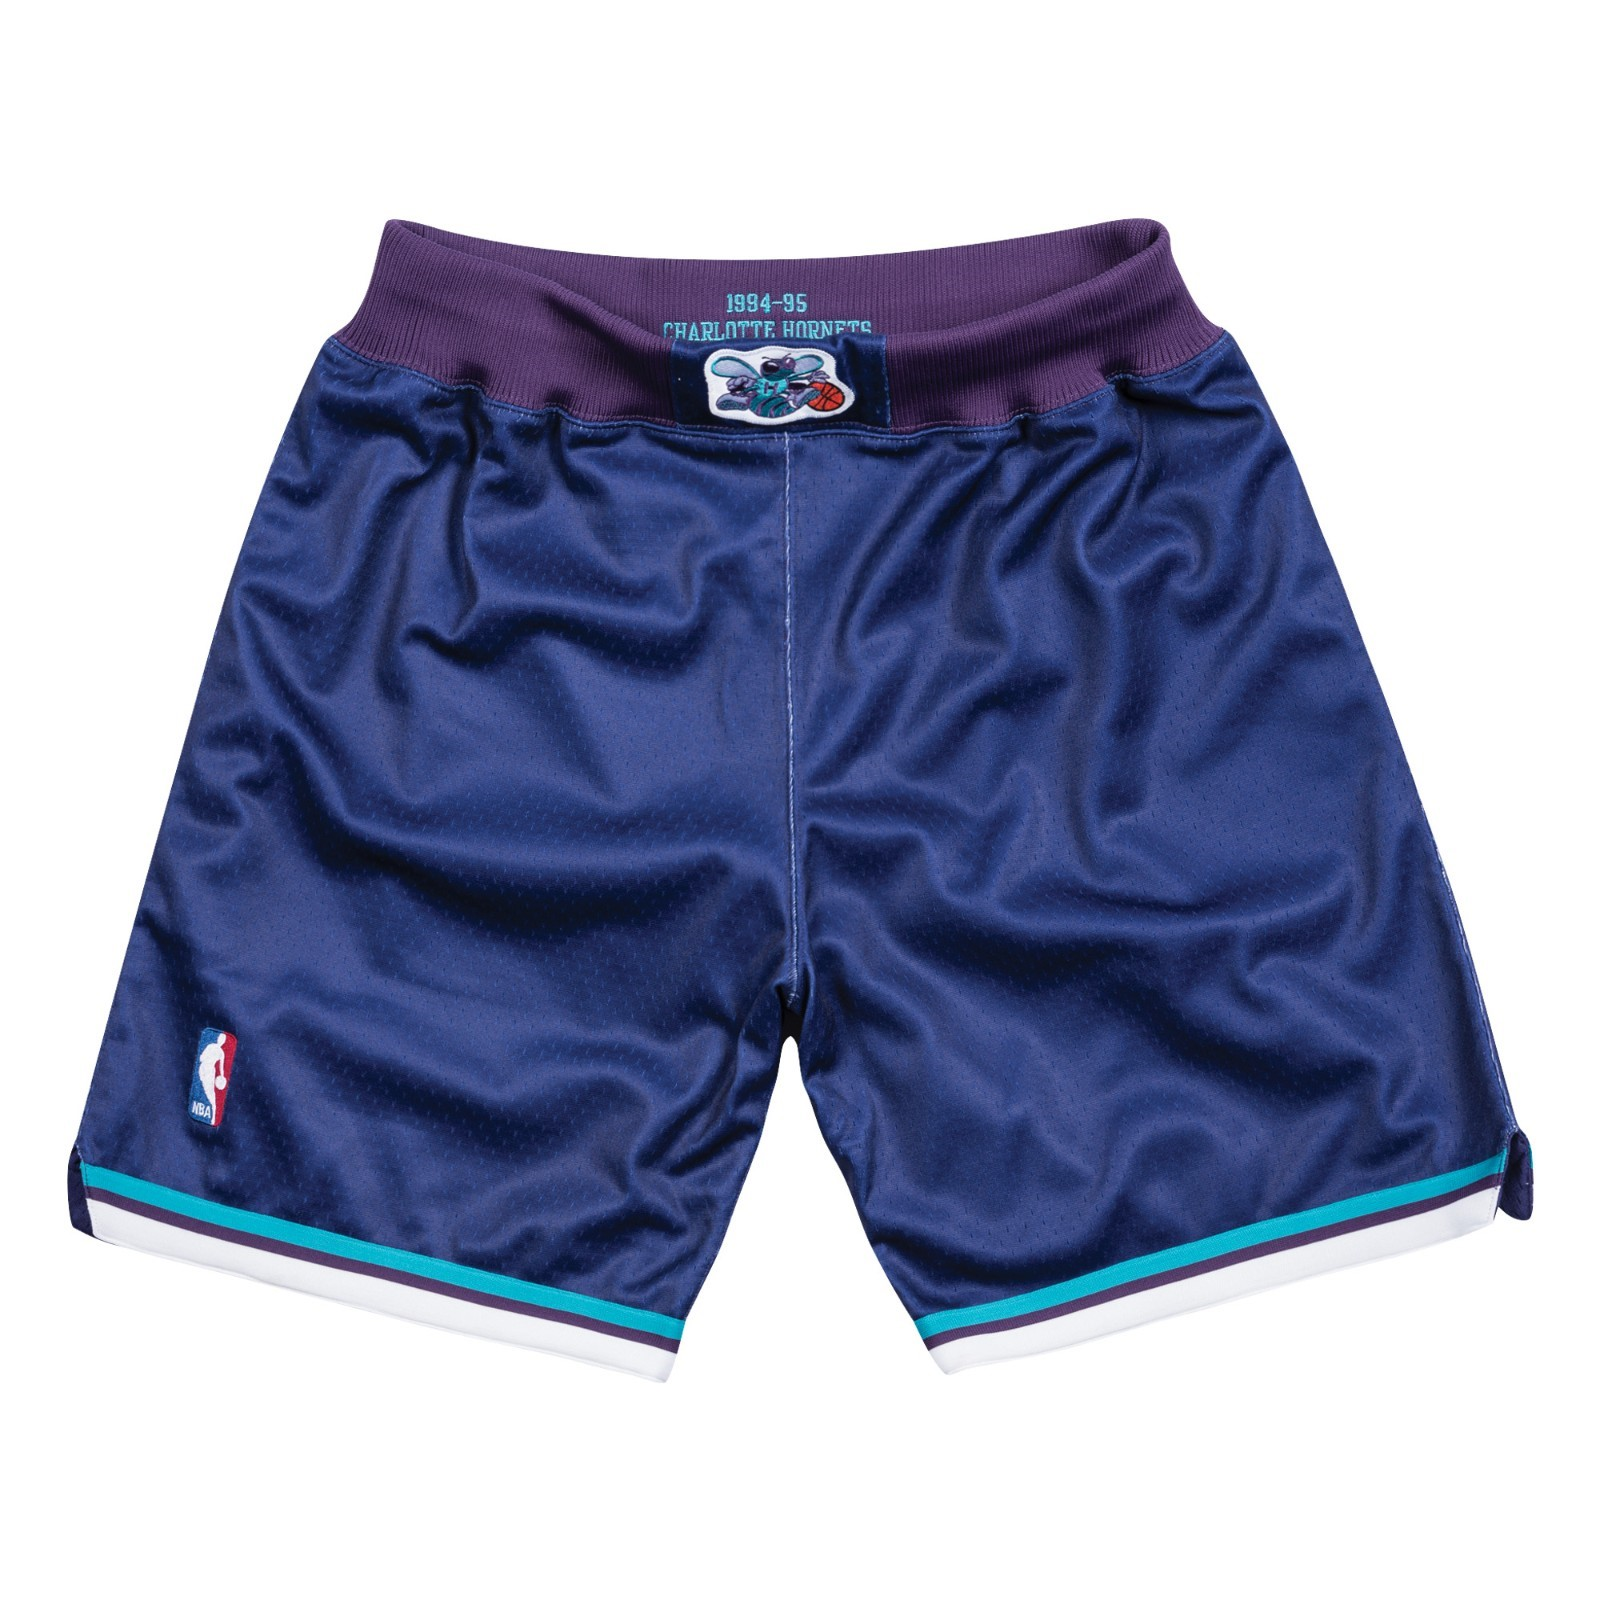 Charlotte Hornets 1994-95 Alternate Purple Mitchell & Ness Authentic Shorts